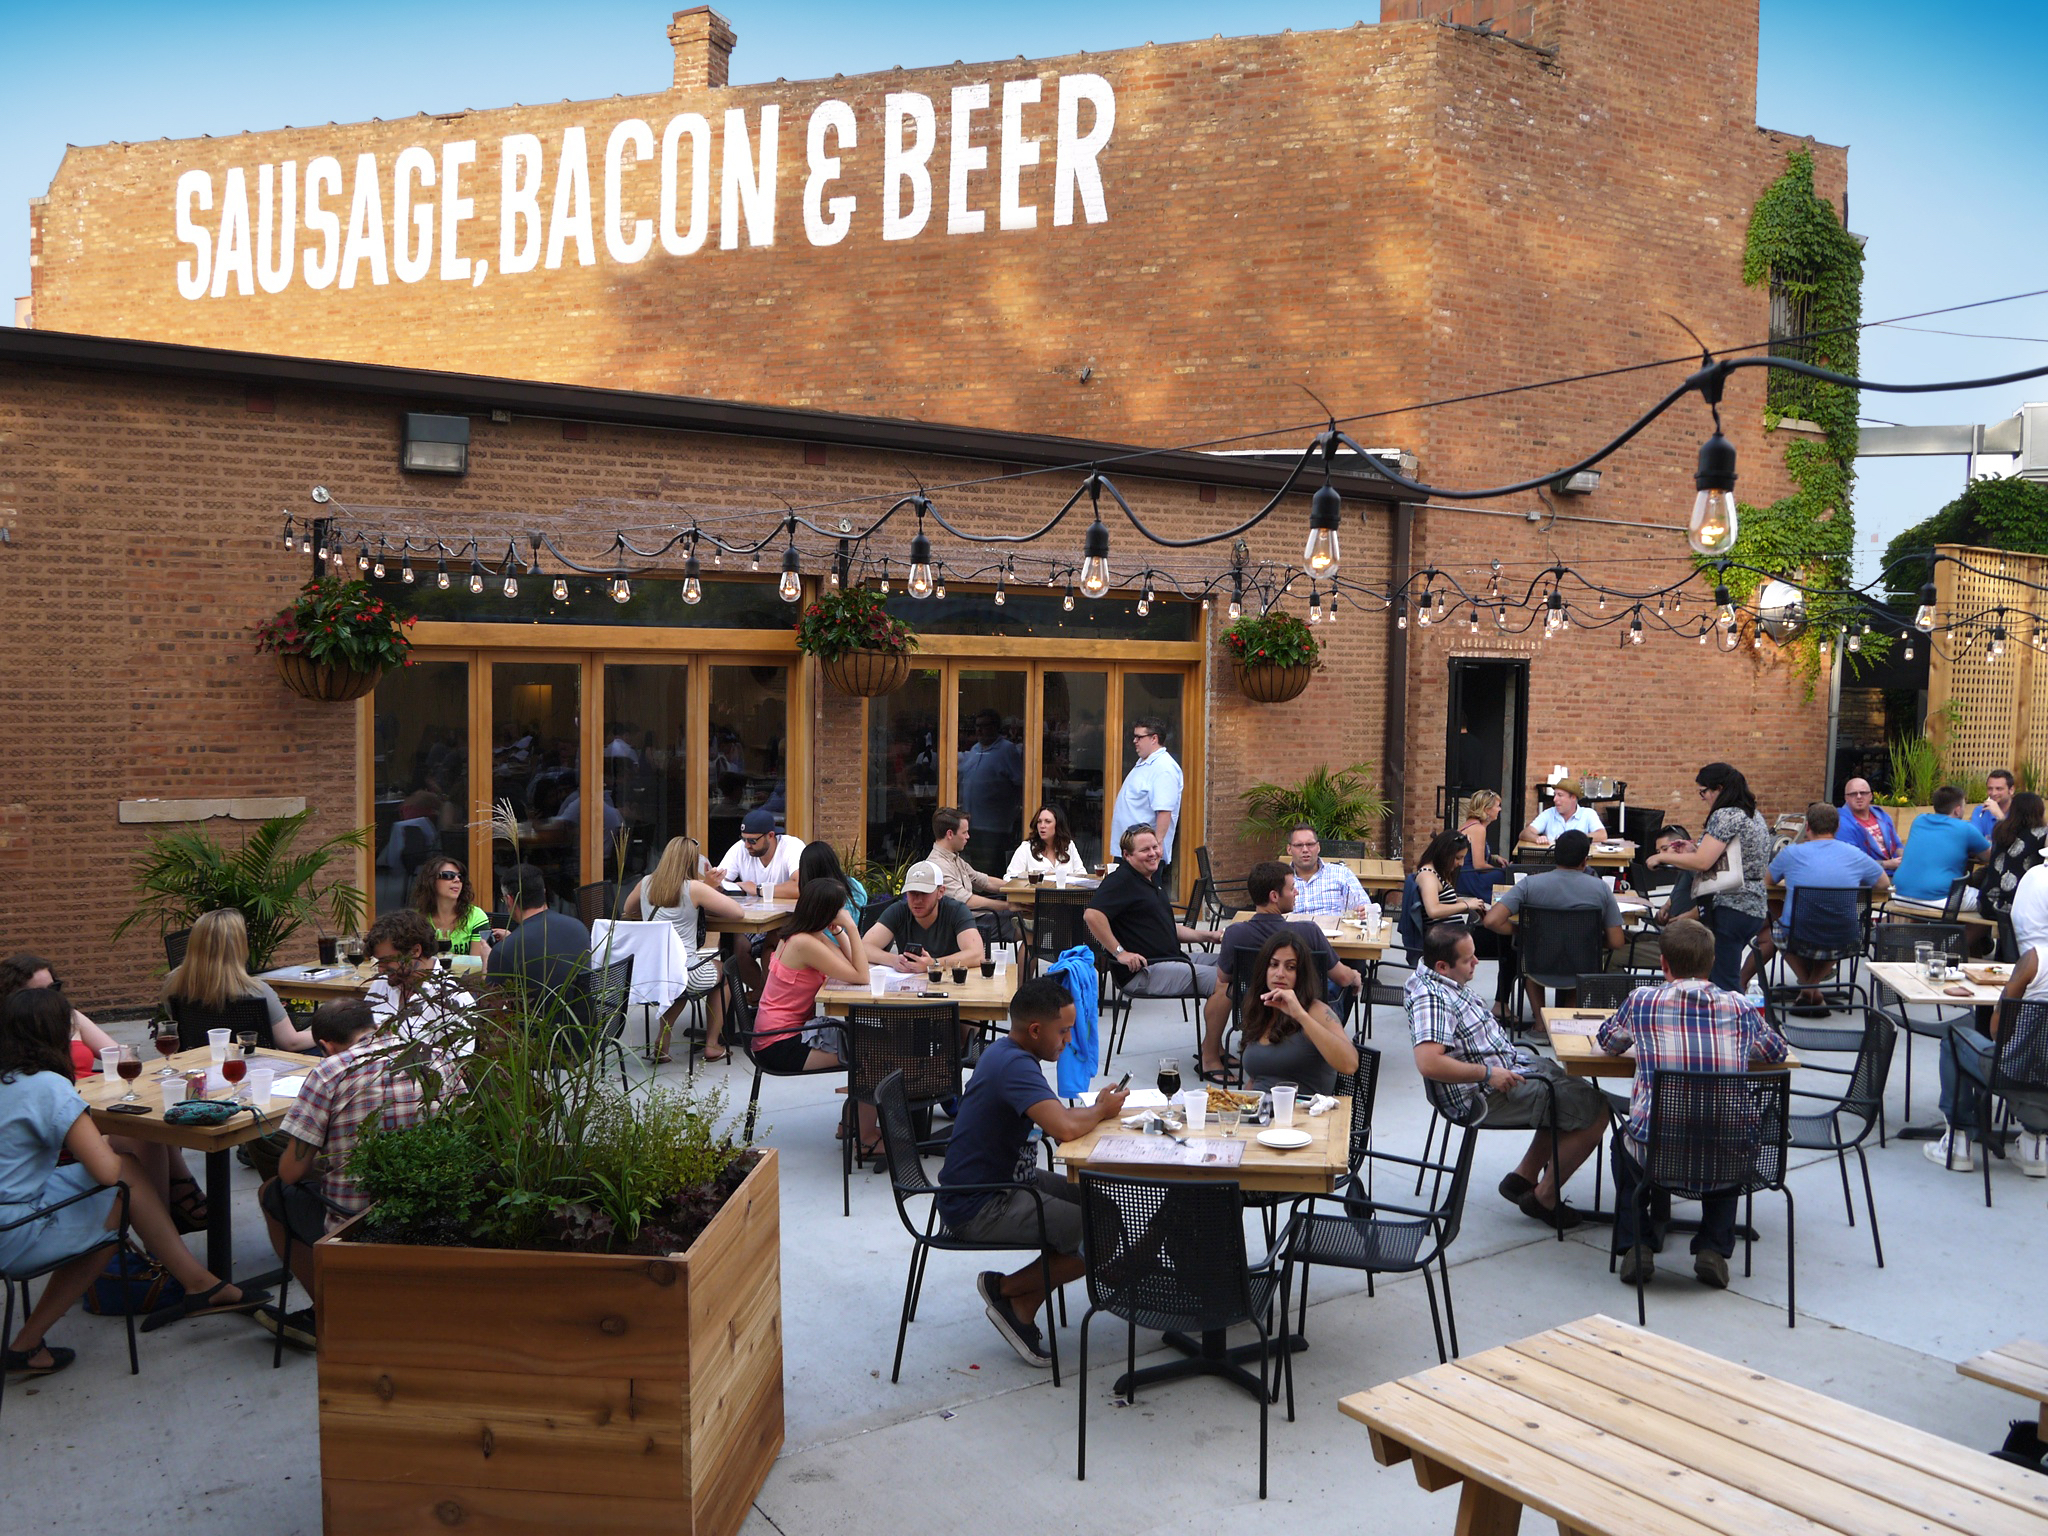 Kaiser Tiger is a beer garden in the West Loop.